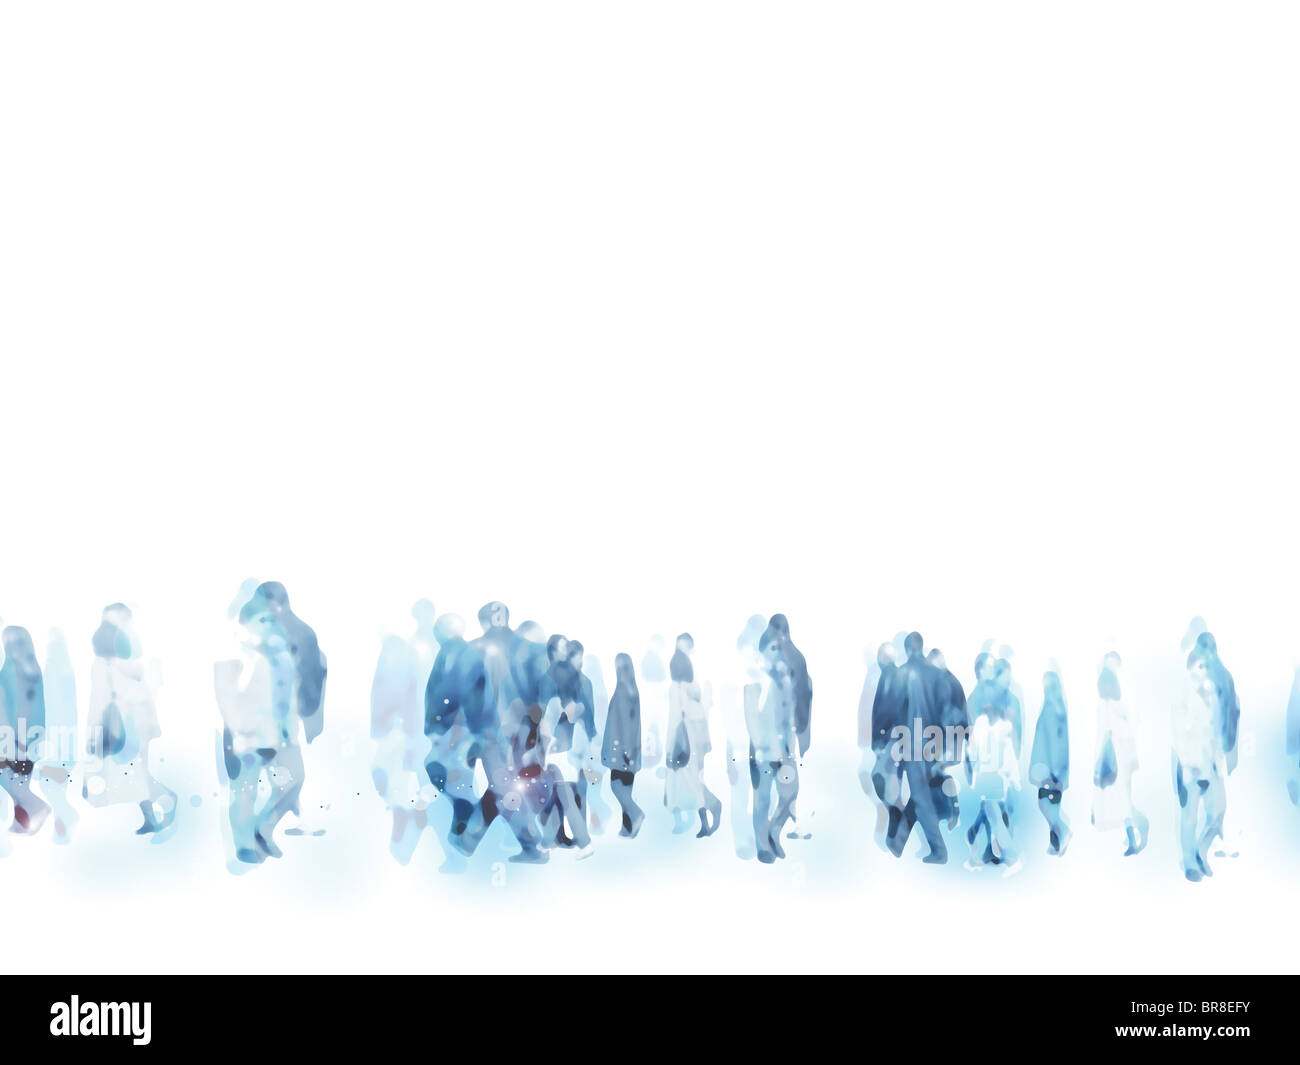 An illustration of urban people marching on the streets - Stock Image